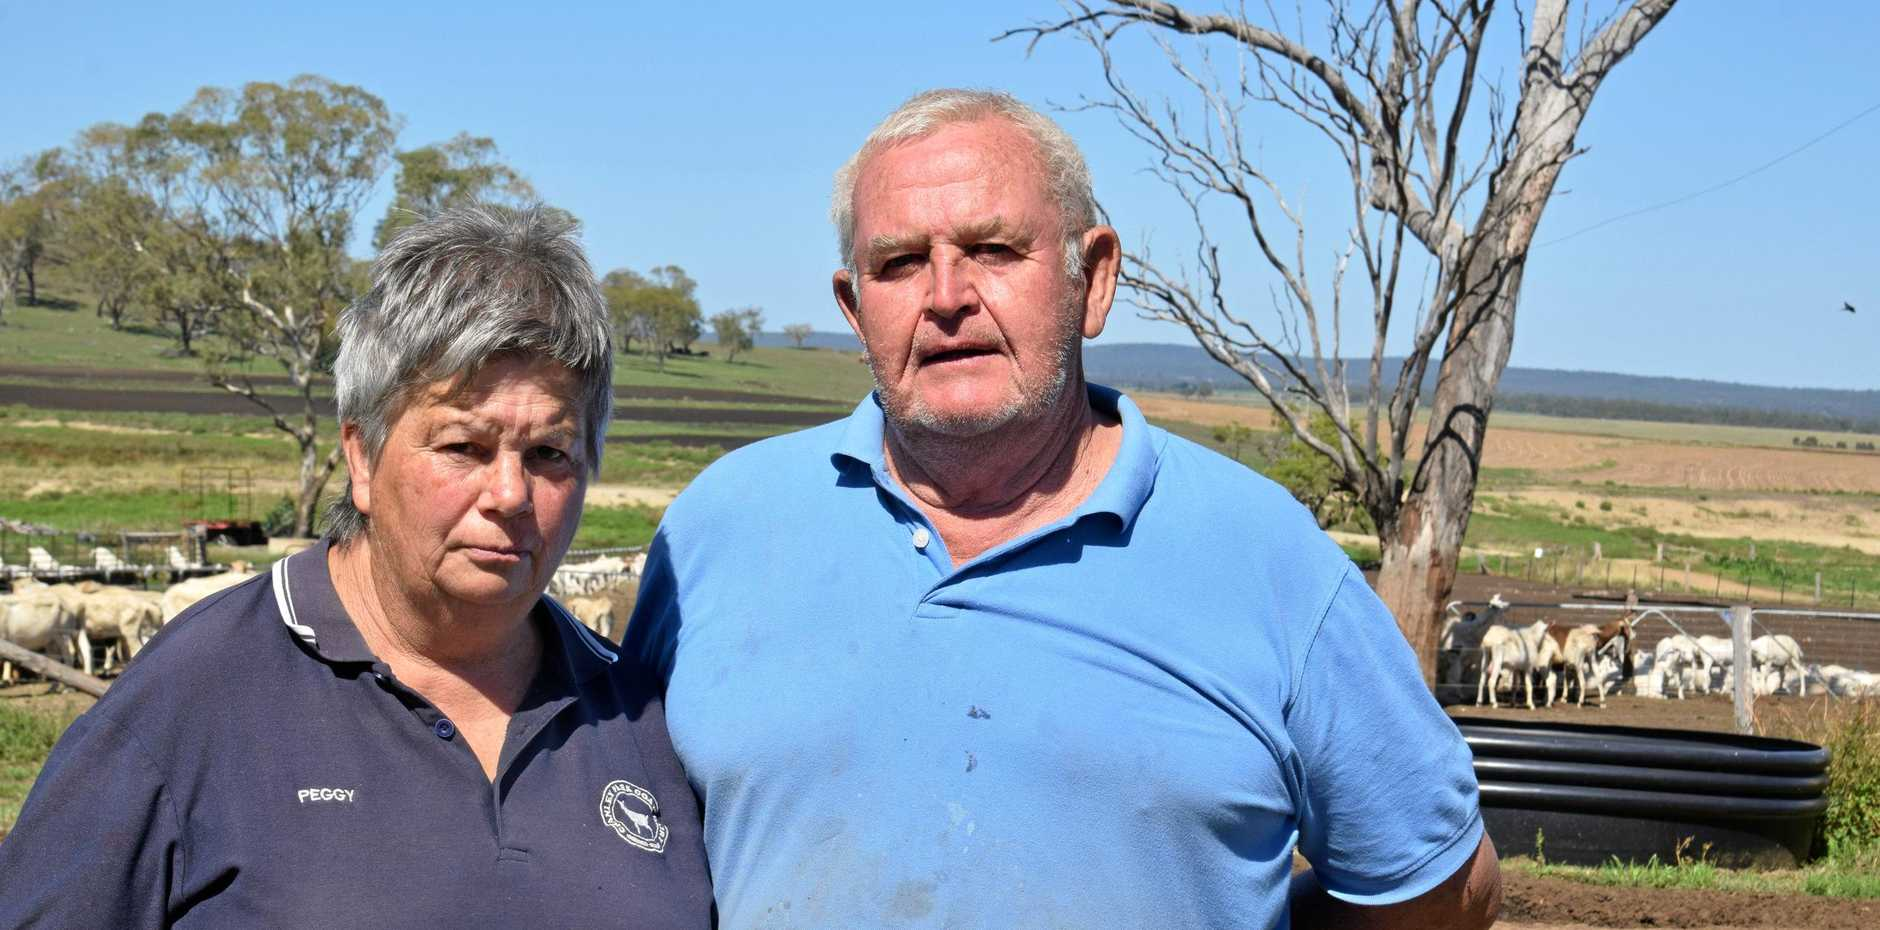 Peggy and Dan Jessen run a 2500-head dairy goat operation near Clifton. The couple were worried when rumours circulated that vegan protesters were heading to their farm.